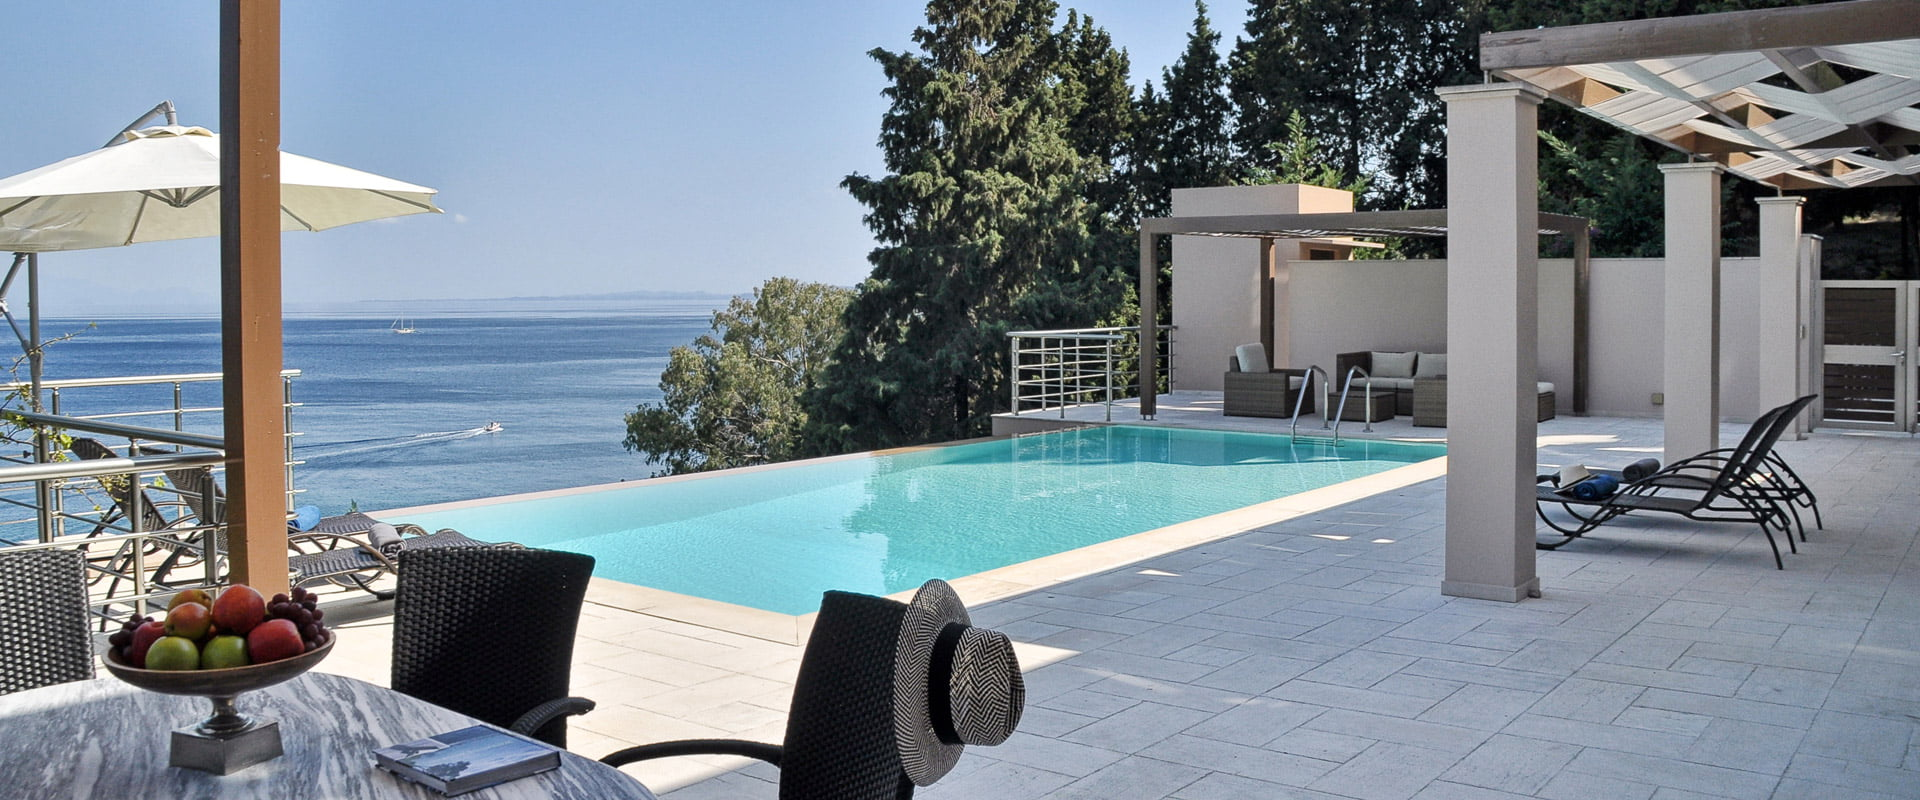 Corfu Luxury Villa Megan 03